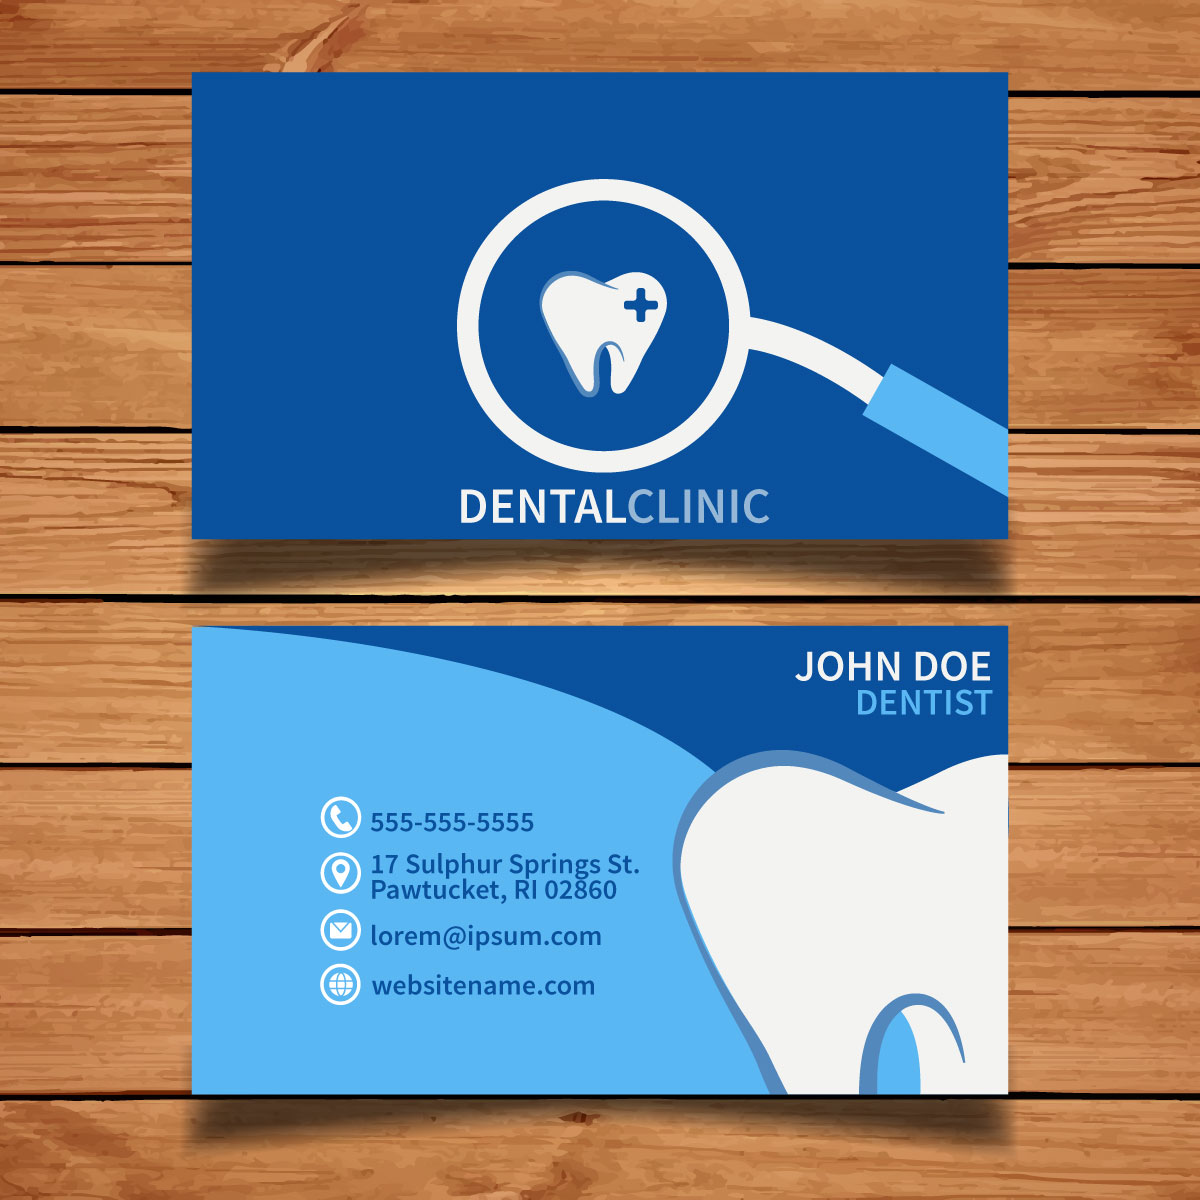 Dental%2BBusiness%2BCards%2BIdeas.jpg